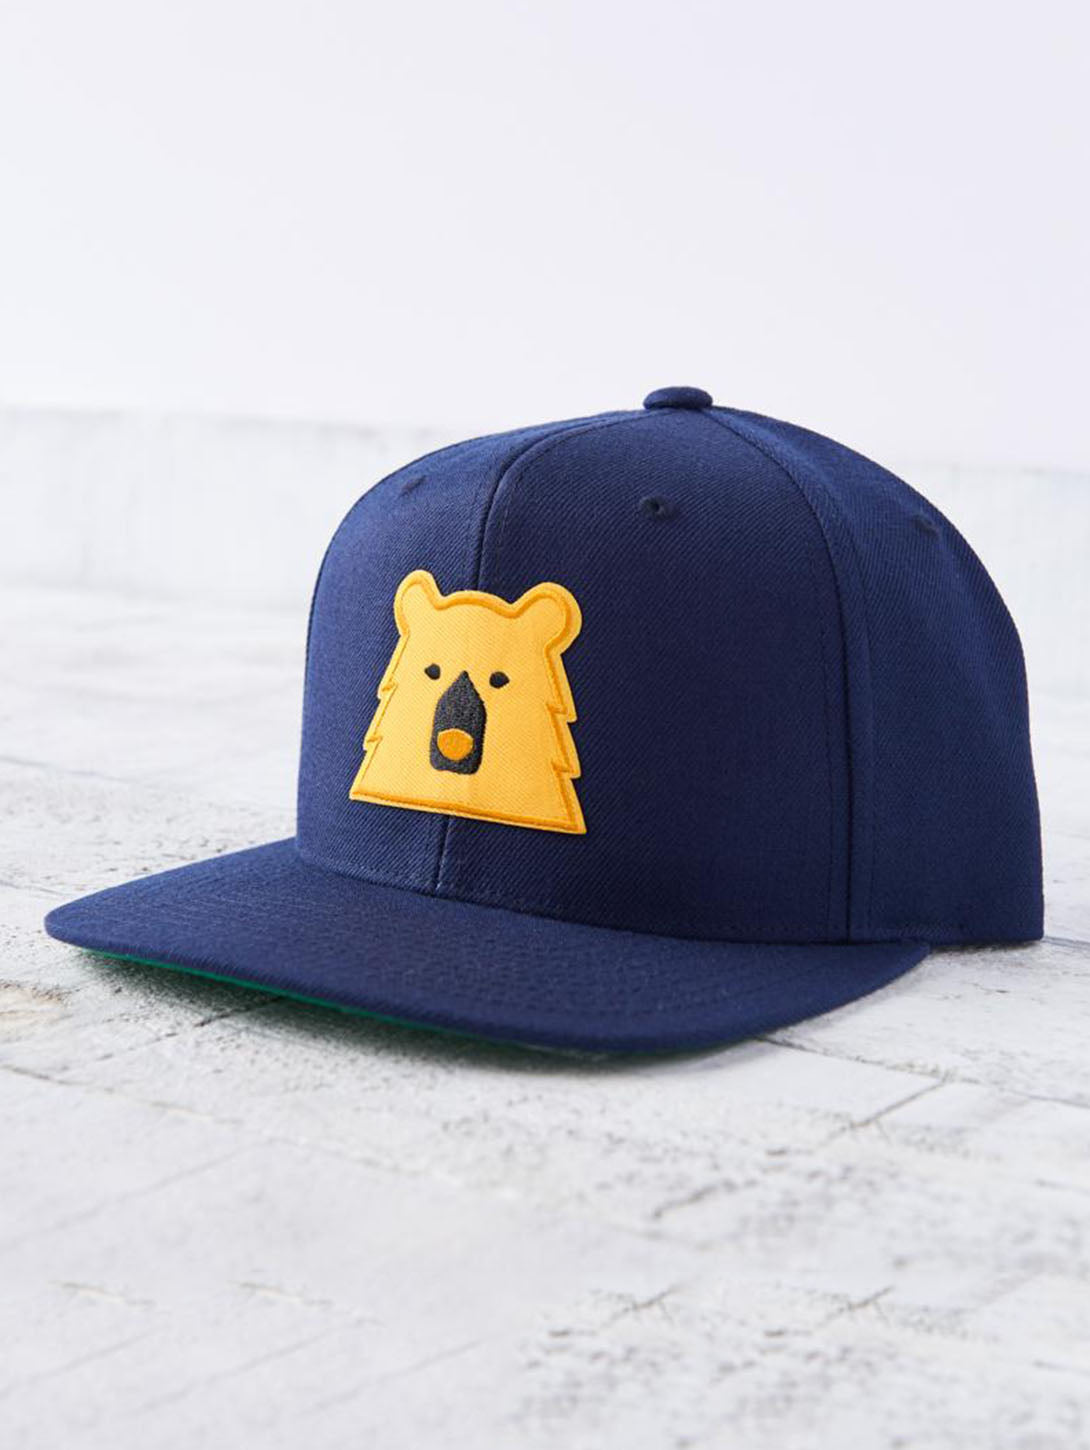 Snapback Bear Hat - Navy/Golden-North Standard Trading Post-Over the Rainbow